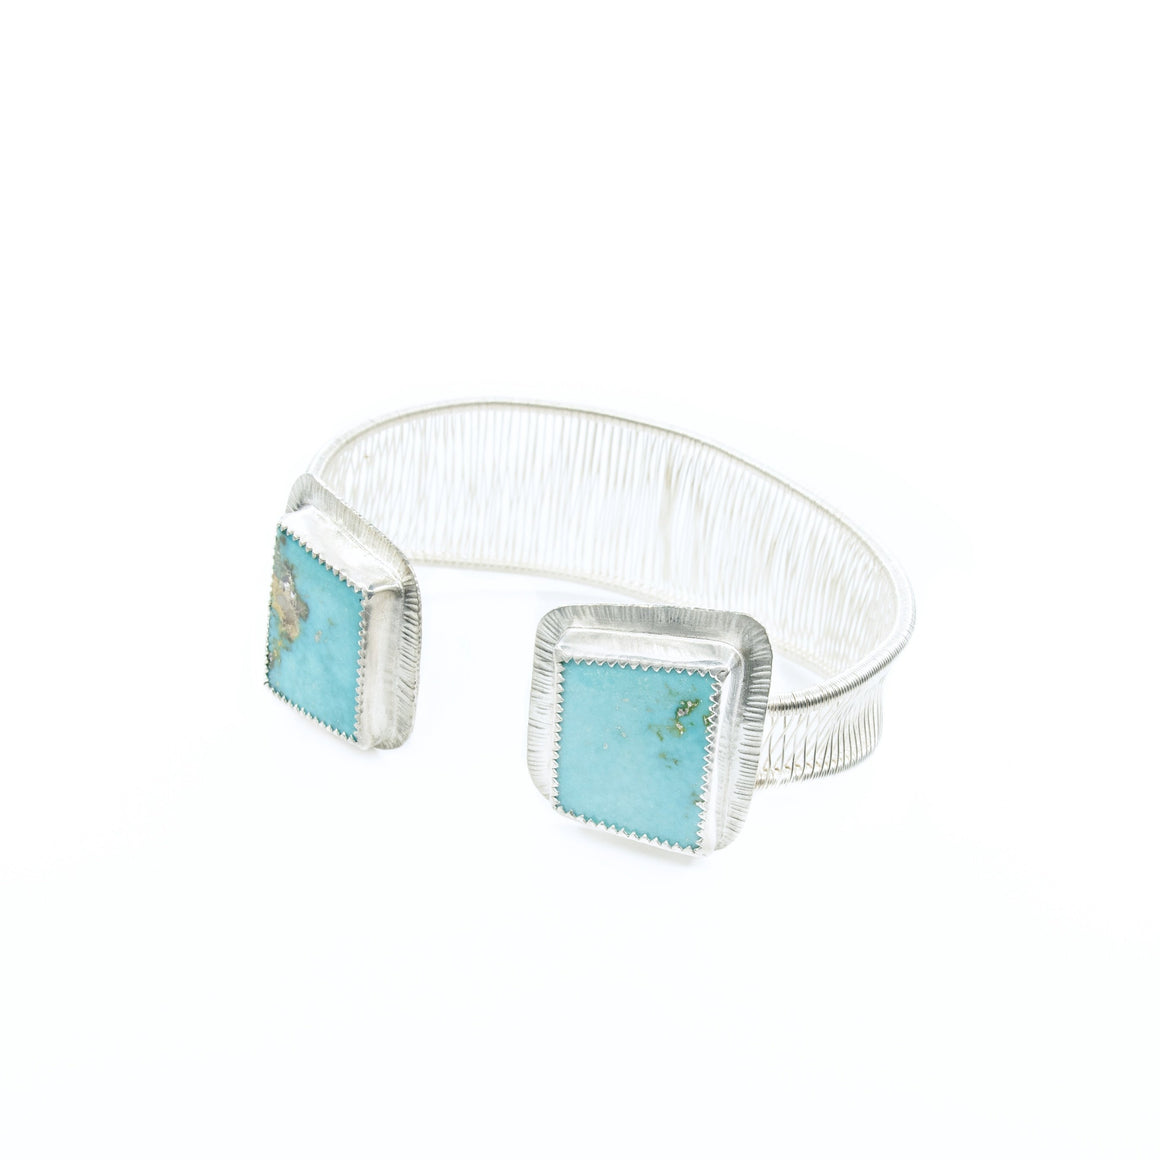 Basanah - Turquoise Mountain Double Stone Woven Silver Cuff - Original Sin Jewelry